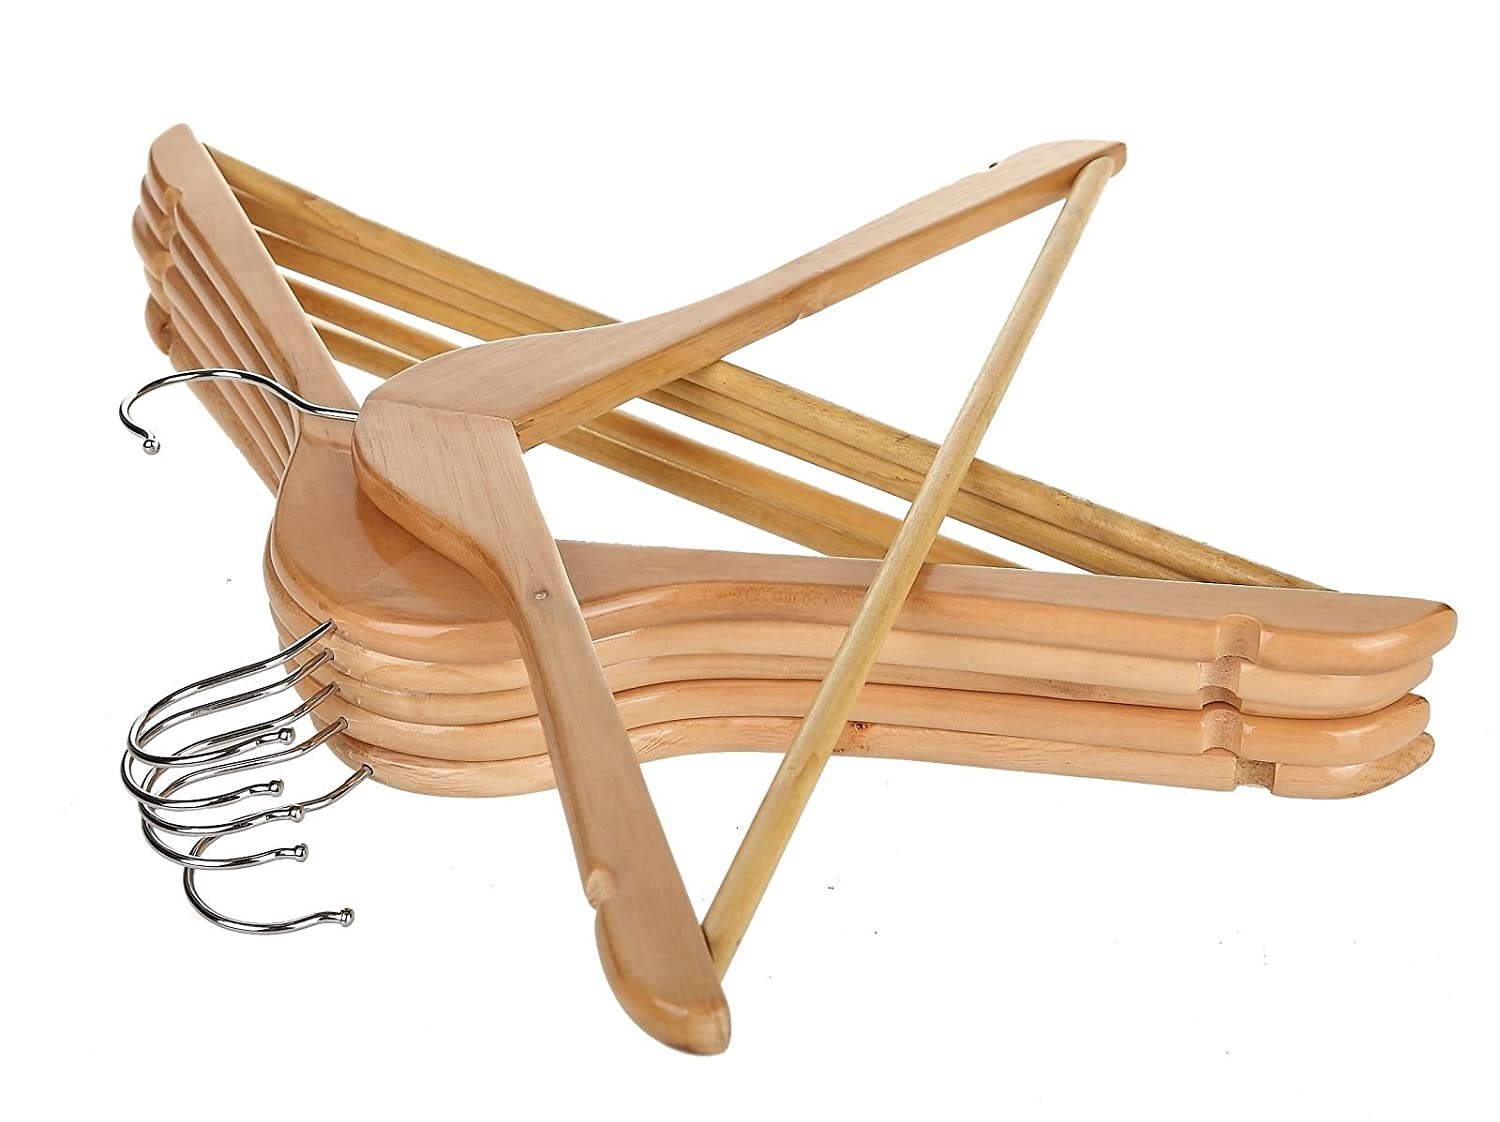 Vinsani [10 Hangers] Natural Wooden Clothes Hangers For Shops & Homes with Trouser Bar & Skirt Notches - 44.5 cm (17.5)